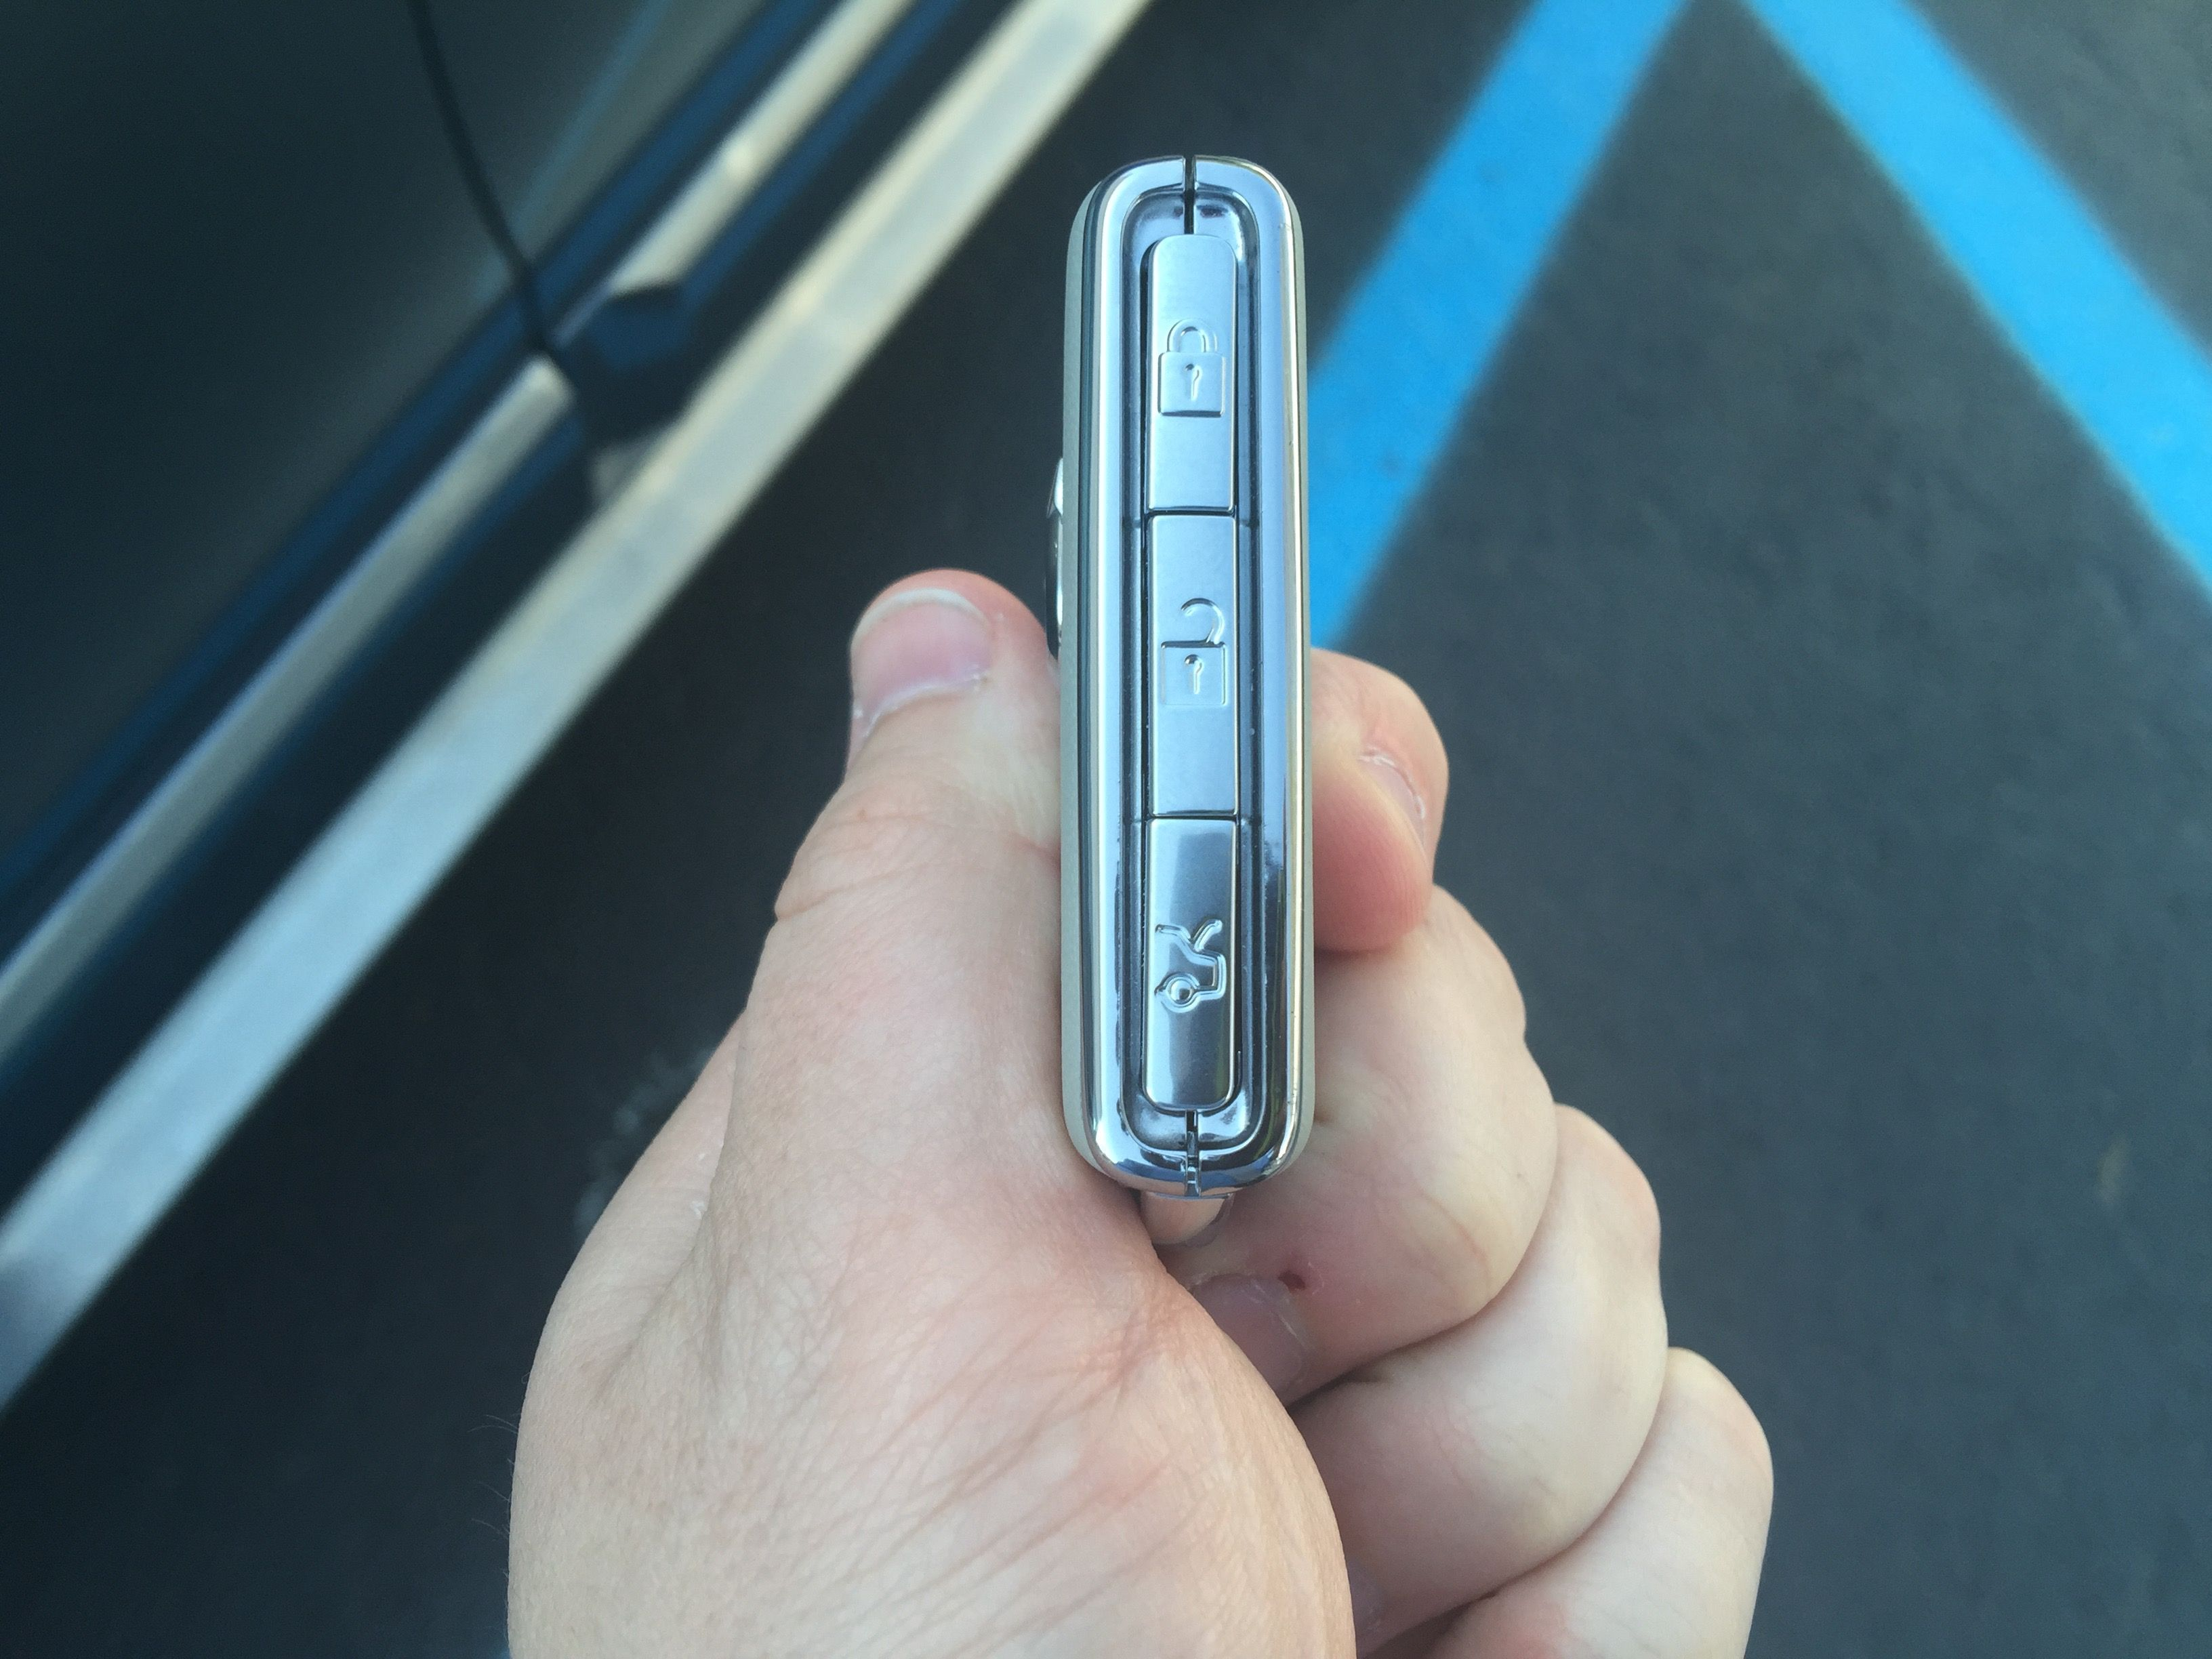 The Lock Unlock And Trunk Release Buttons On The Key Fob Of The